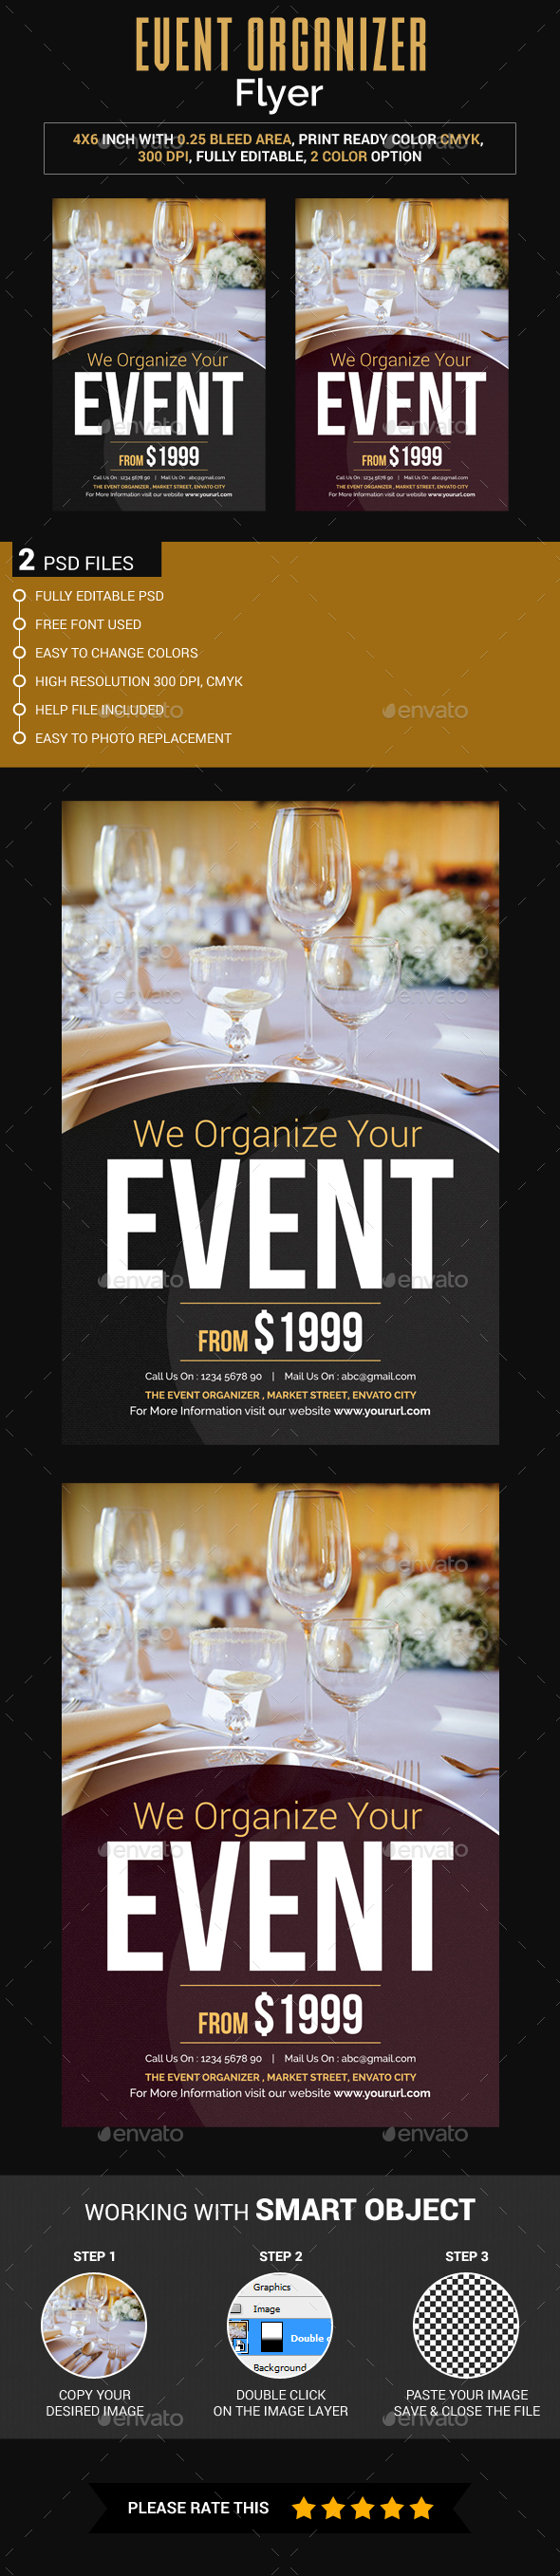 Event Organize Flyer - Events Flyers